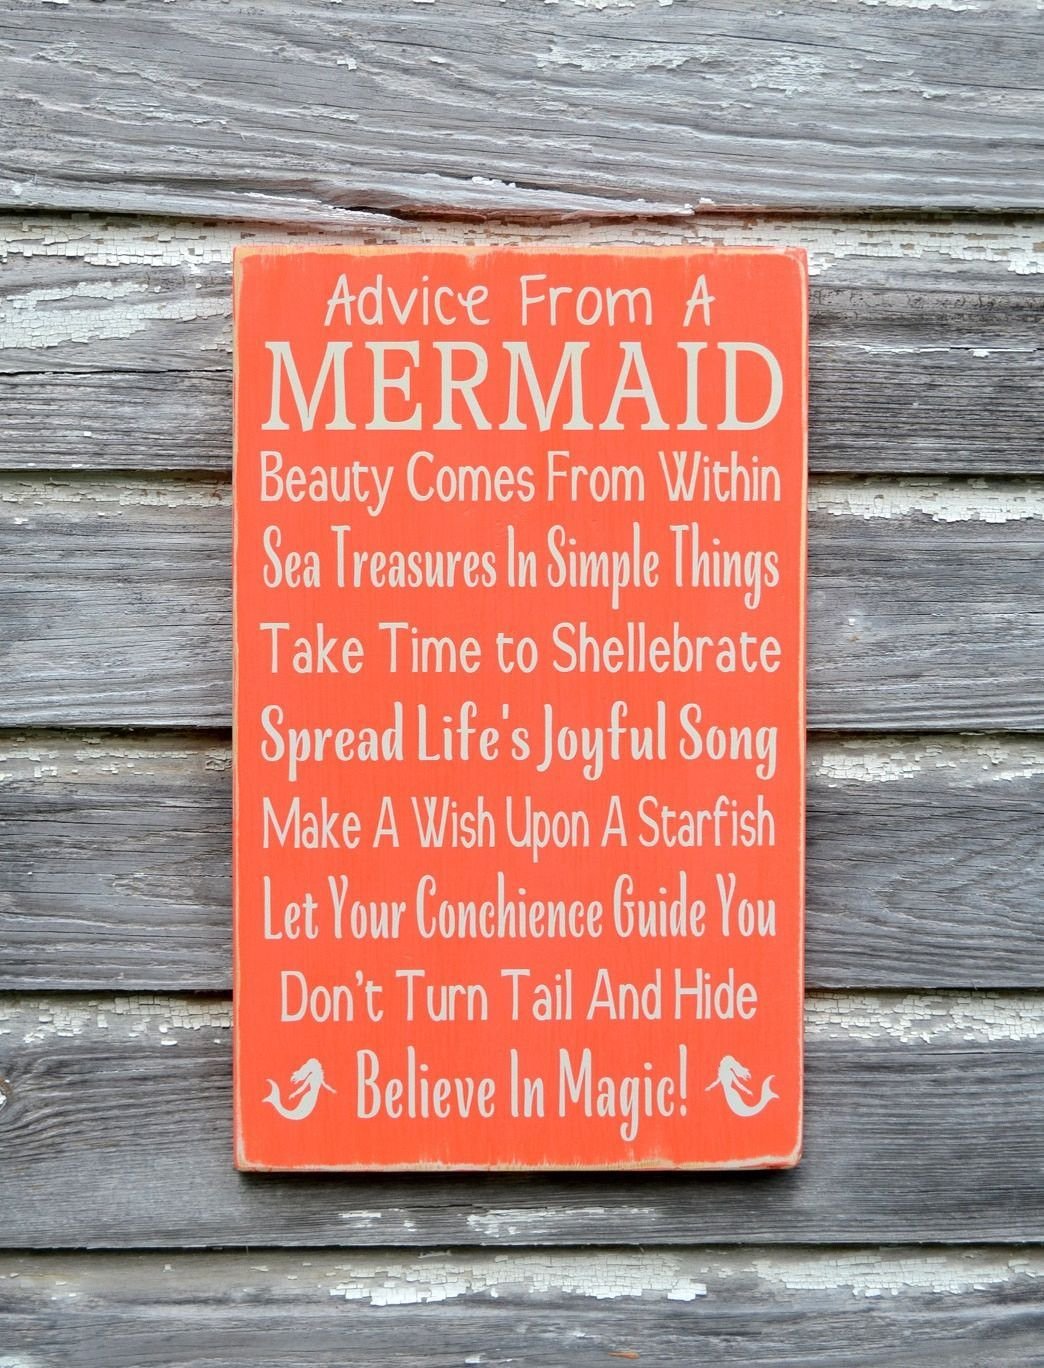 Beach Sign Decor Magnificent Mermaid Decor Beach Sign Custom Colors Advice From A Mermaids Inspiration Design